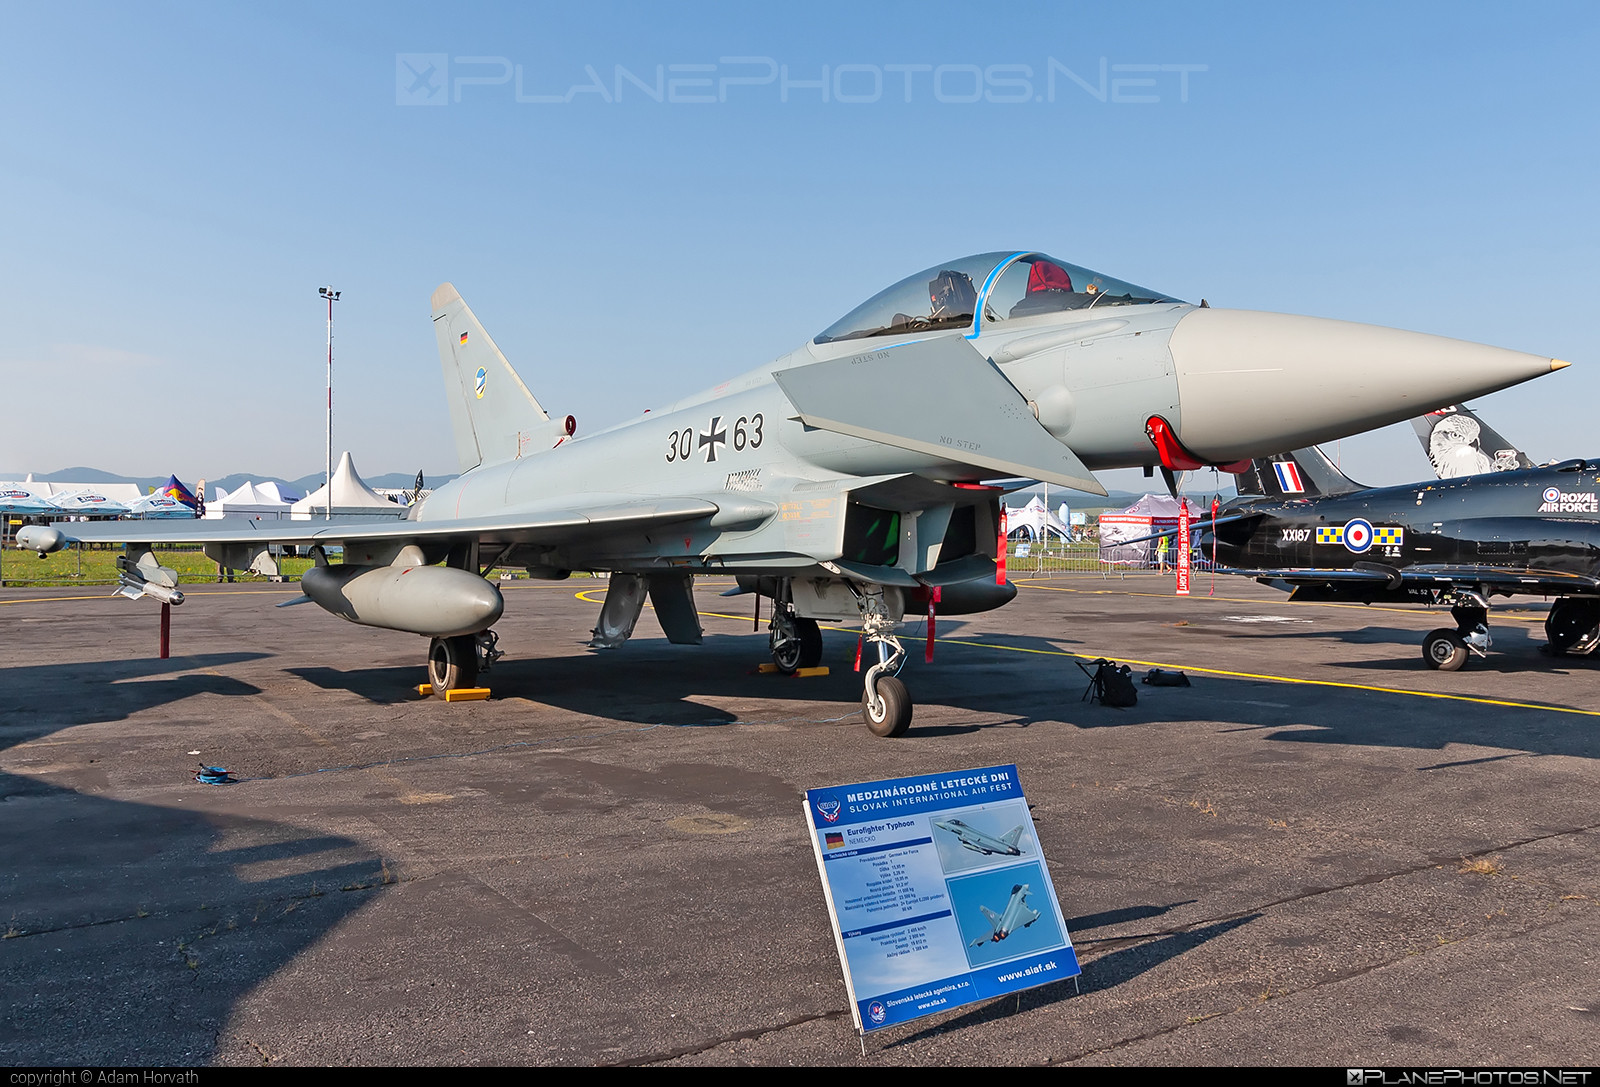 Eurofighter Typhoon S - 30+63 operated by Luftwaffe (German Air Force) #eurofighter #typhoon